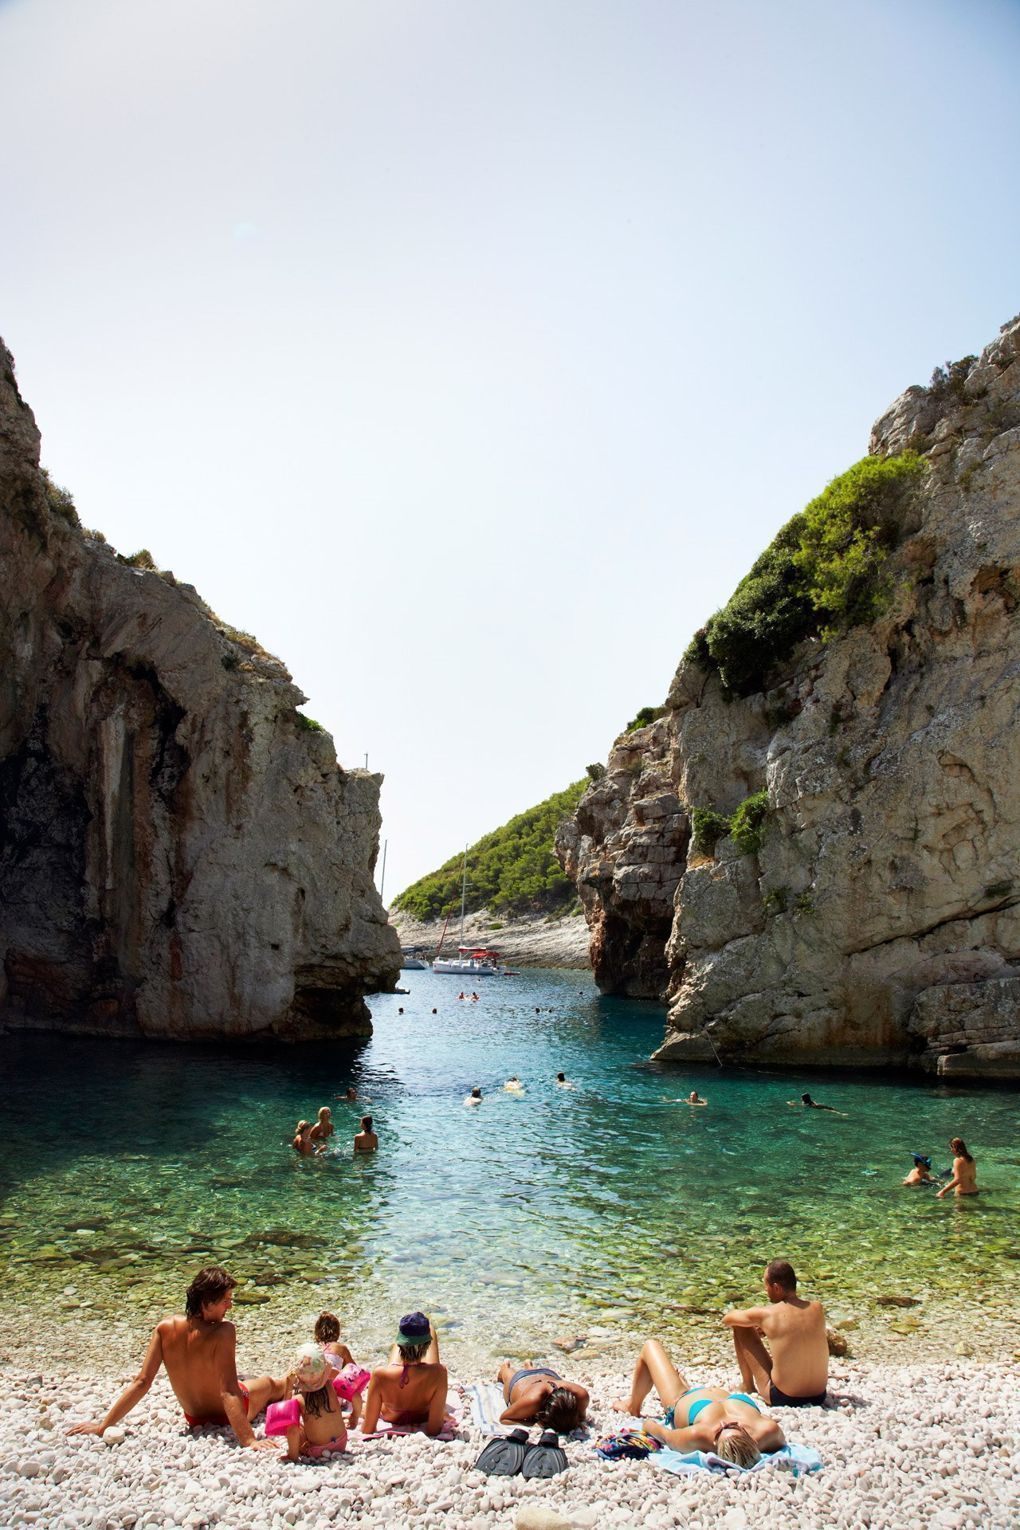 The Best Beaches In Croatia Cn Traveller With Images Croatia Beach Croatia Travel Croatia Vacation